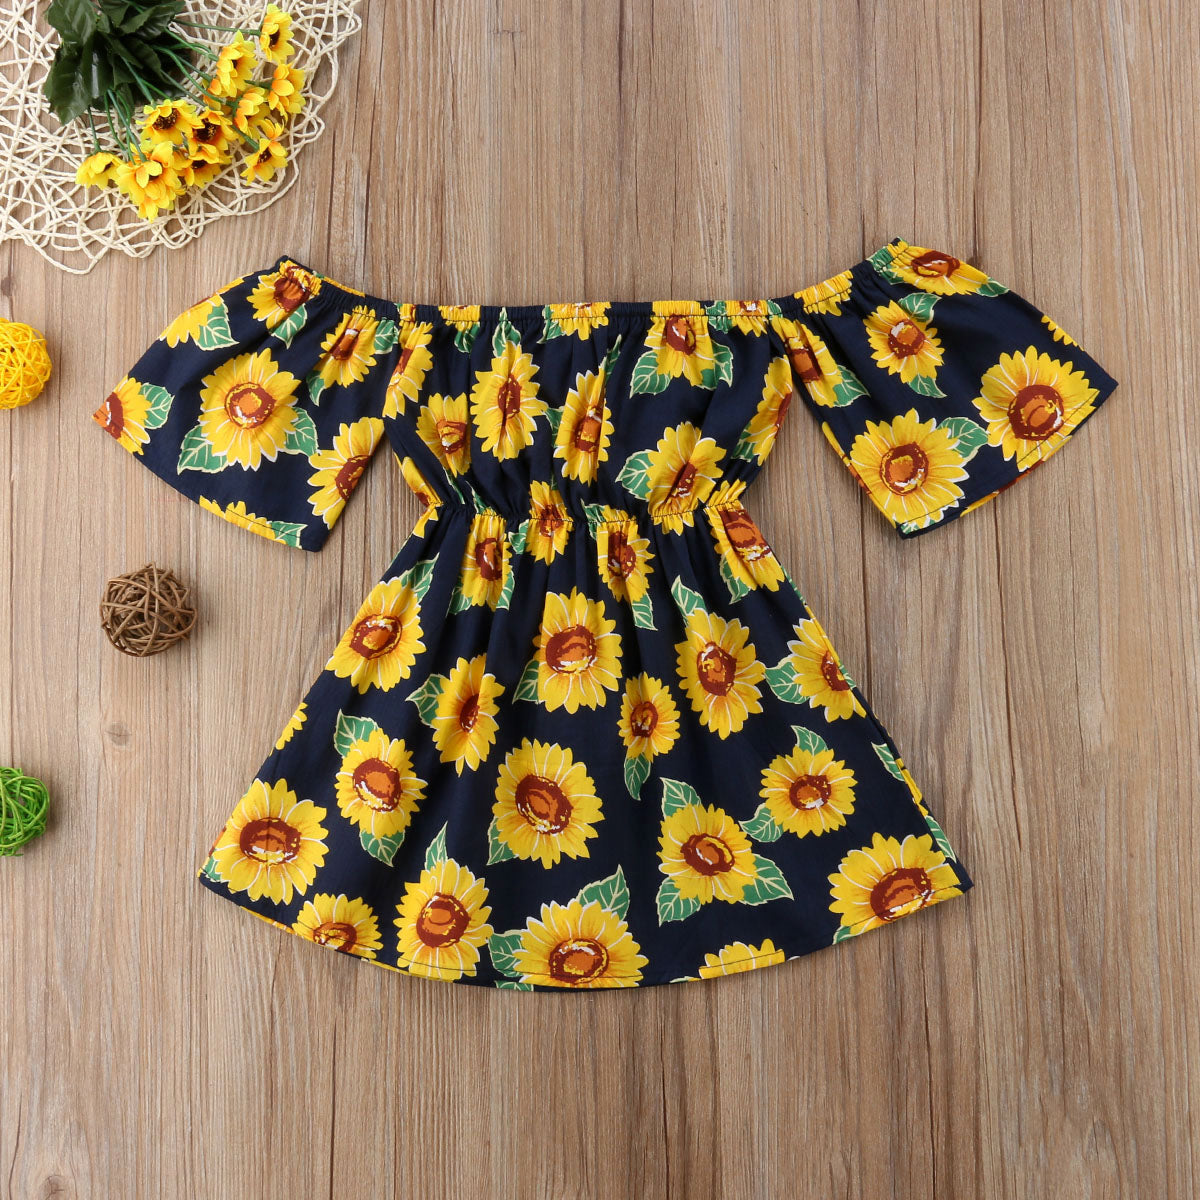 Toddler Dress Sunflower Print Off Shoulder Sundress For Daughter, Girl - Wonder Hippie Official